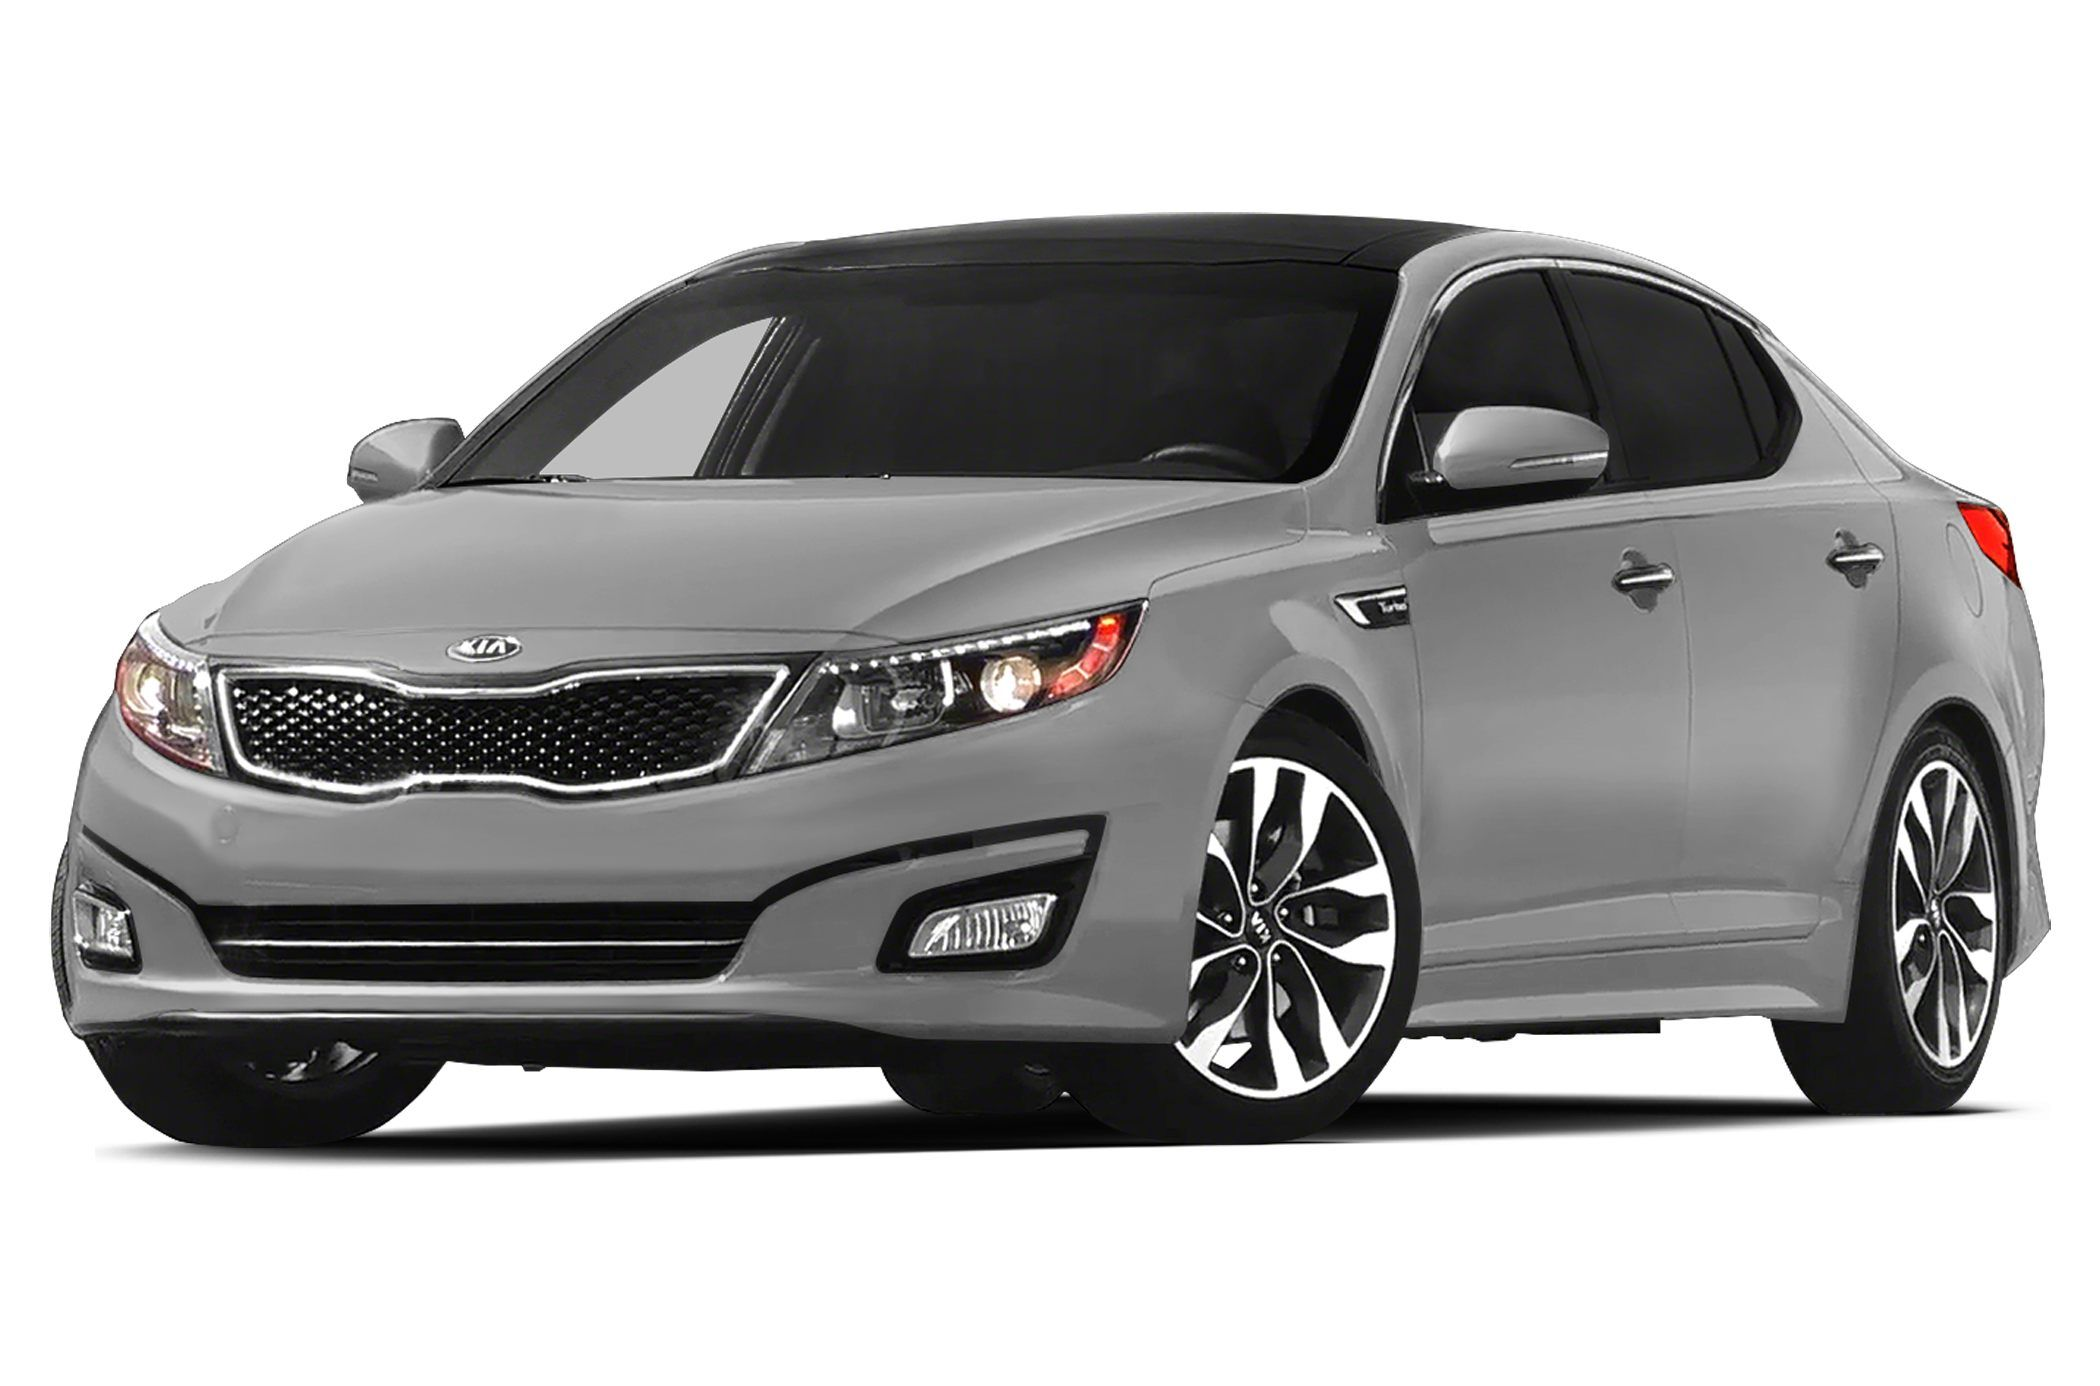 main for kia price niro nj lease dealers incentives freehold sale prices offers new